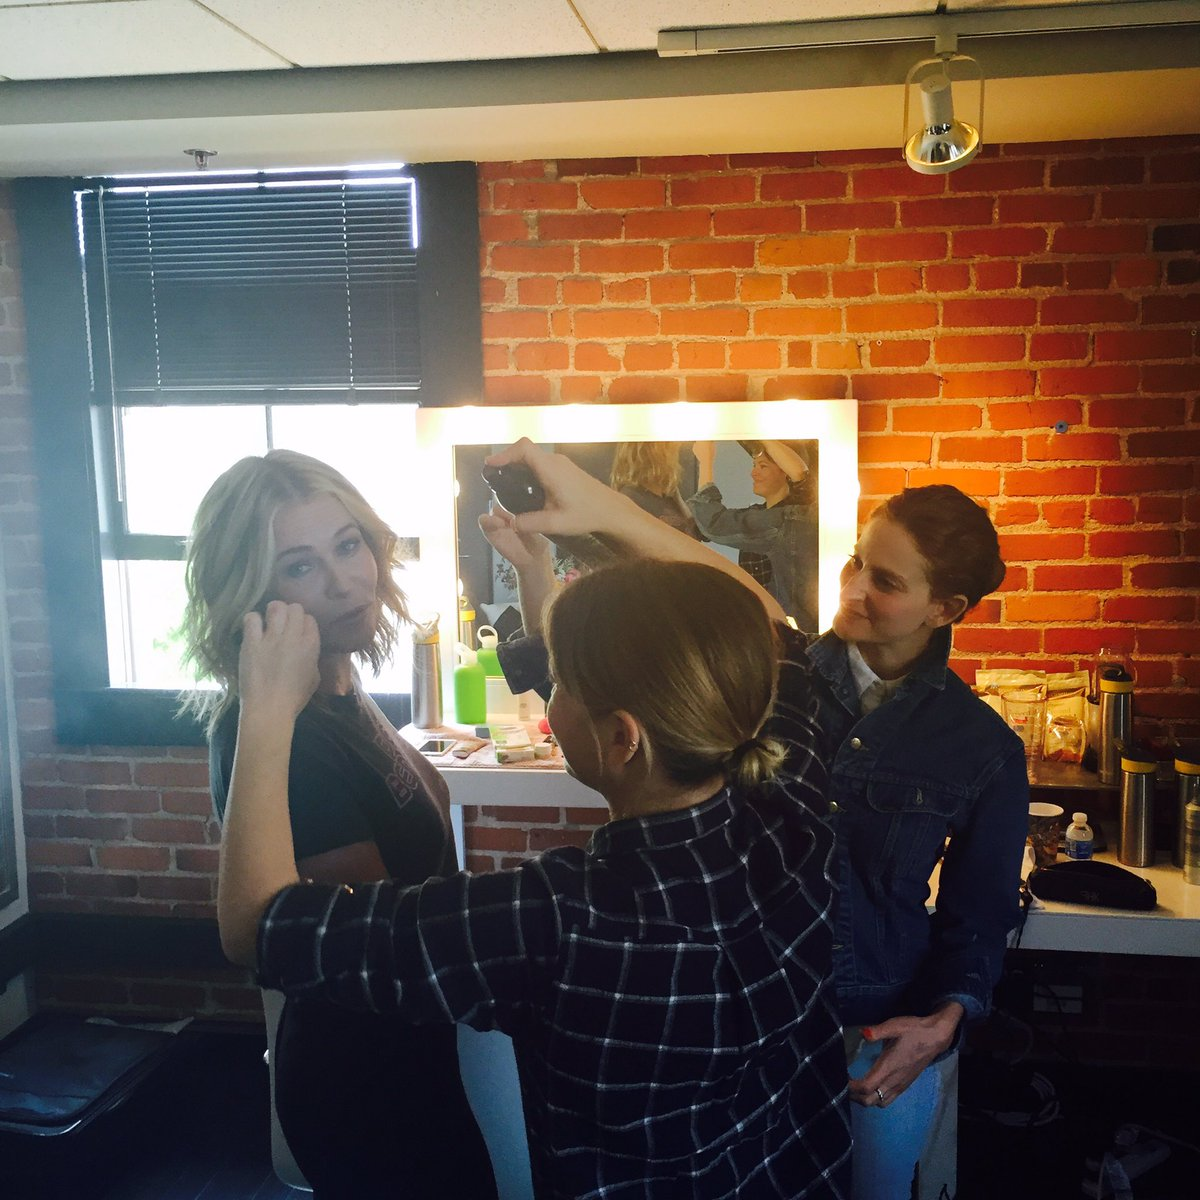 It's game time. @chelseahandler about to film her first @netflix episode. #OnSet #ChelseaShow https://t.co/02q7n1mRdL